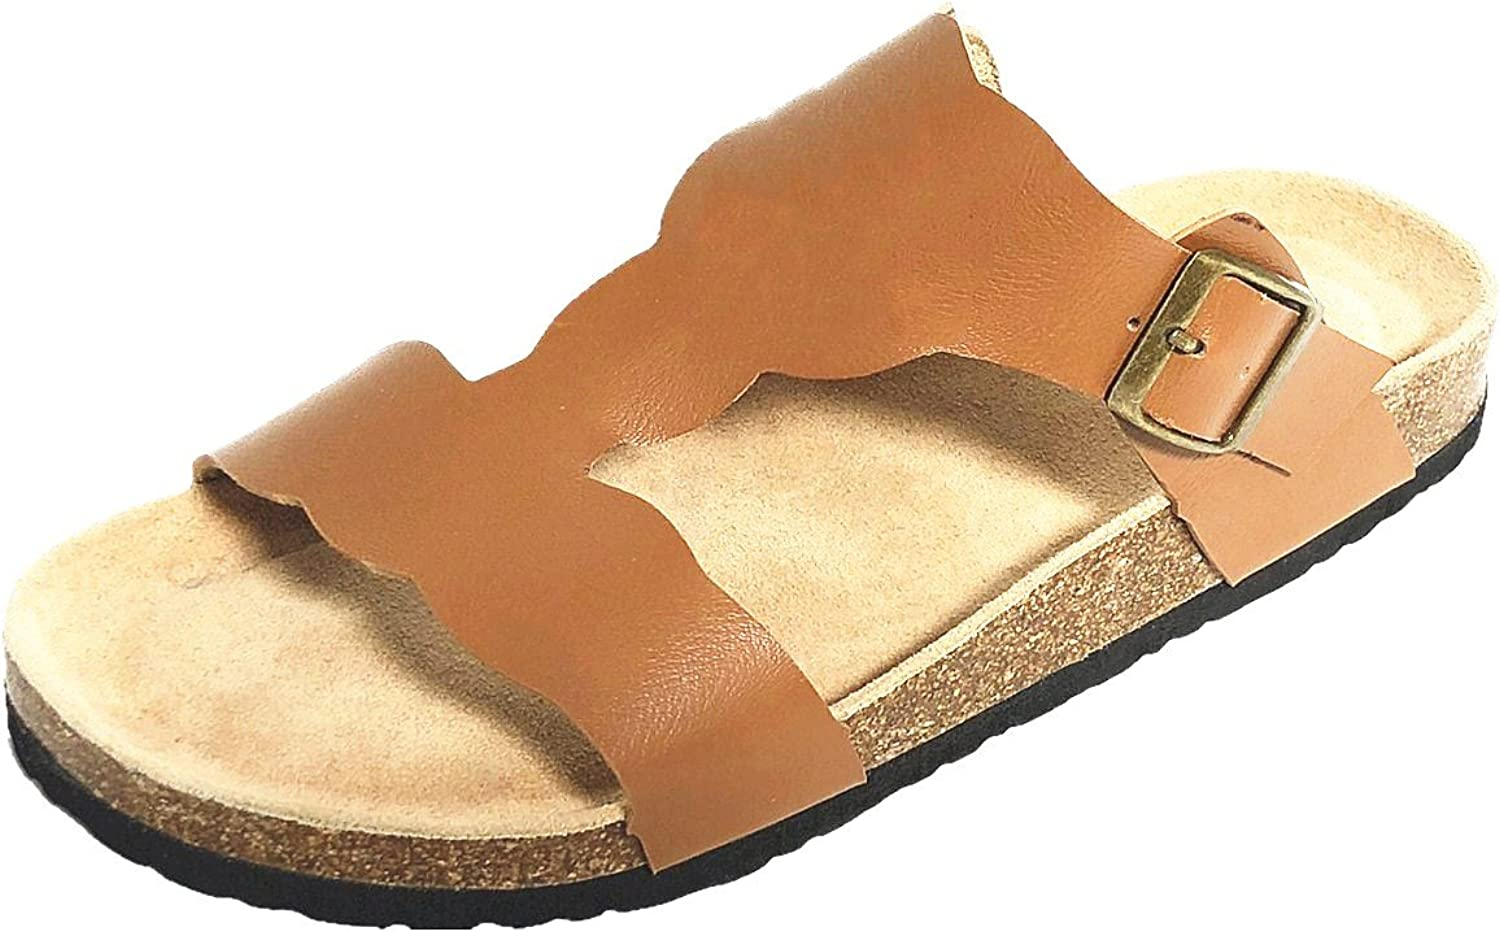 MONOBLANKS Women Flat Leather Cork Sandals with Adjustable Strap Can be Monogrammed